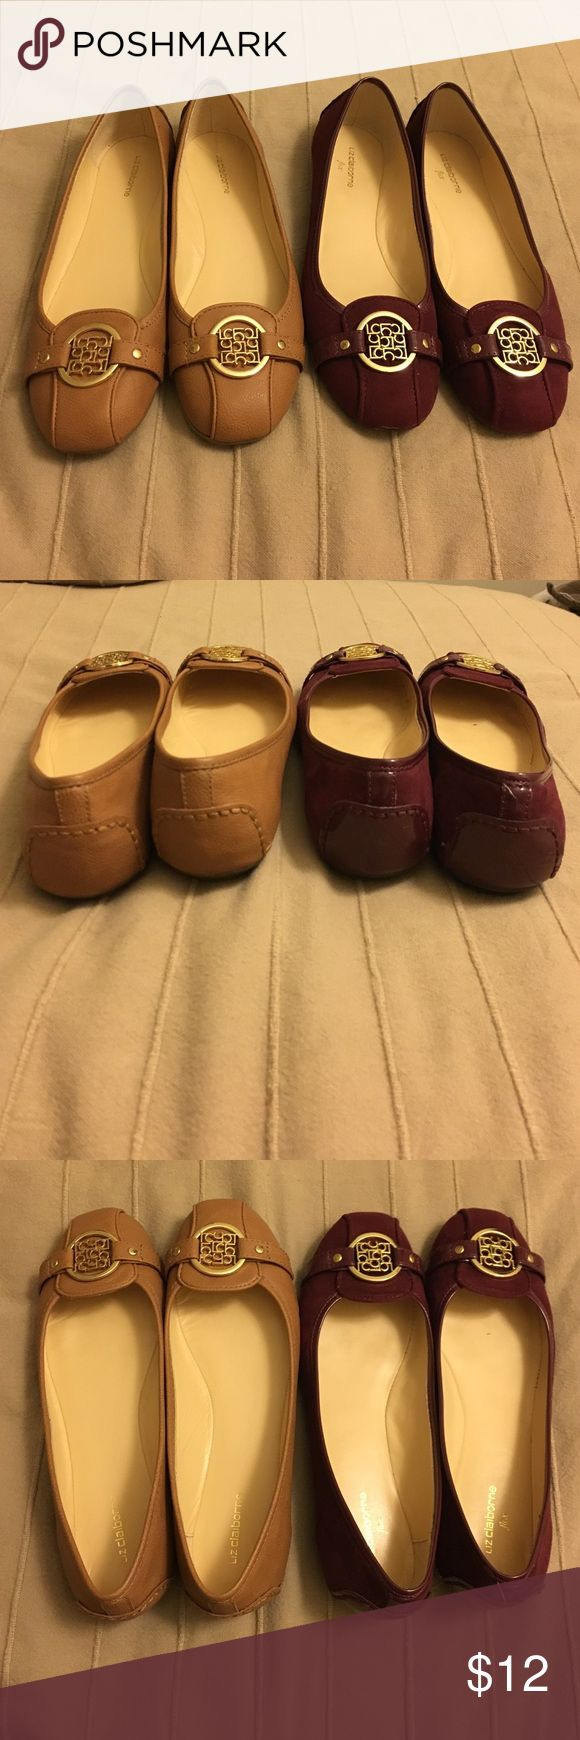 Liz Claiborne Iris Flats Liz Claiborne Iris Flats. Size: 6.5.                            Burgundy is in suede. Liz Claiborne Shoes Flats & Loafers